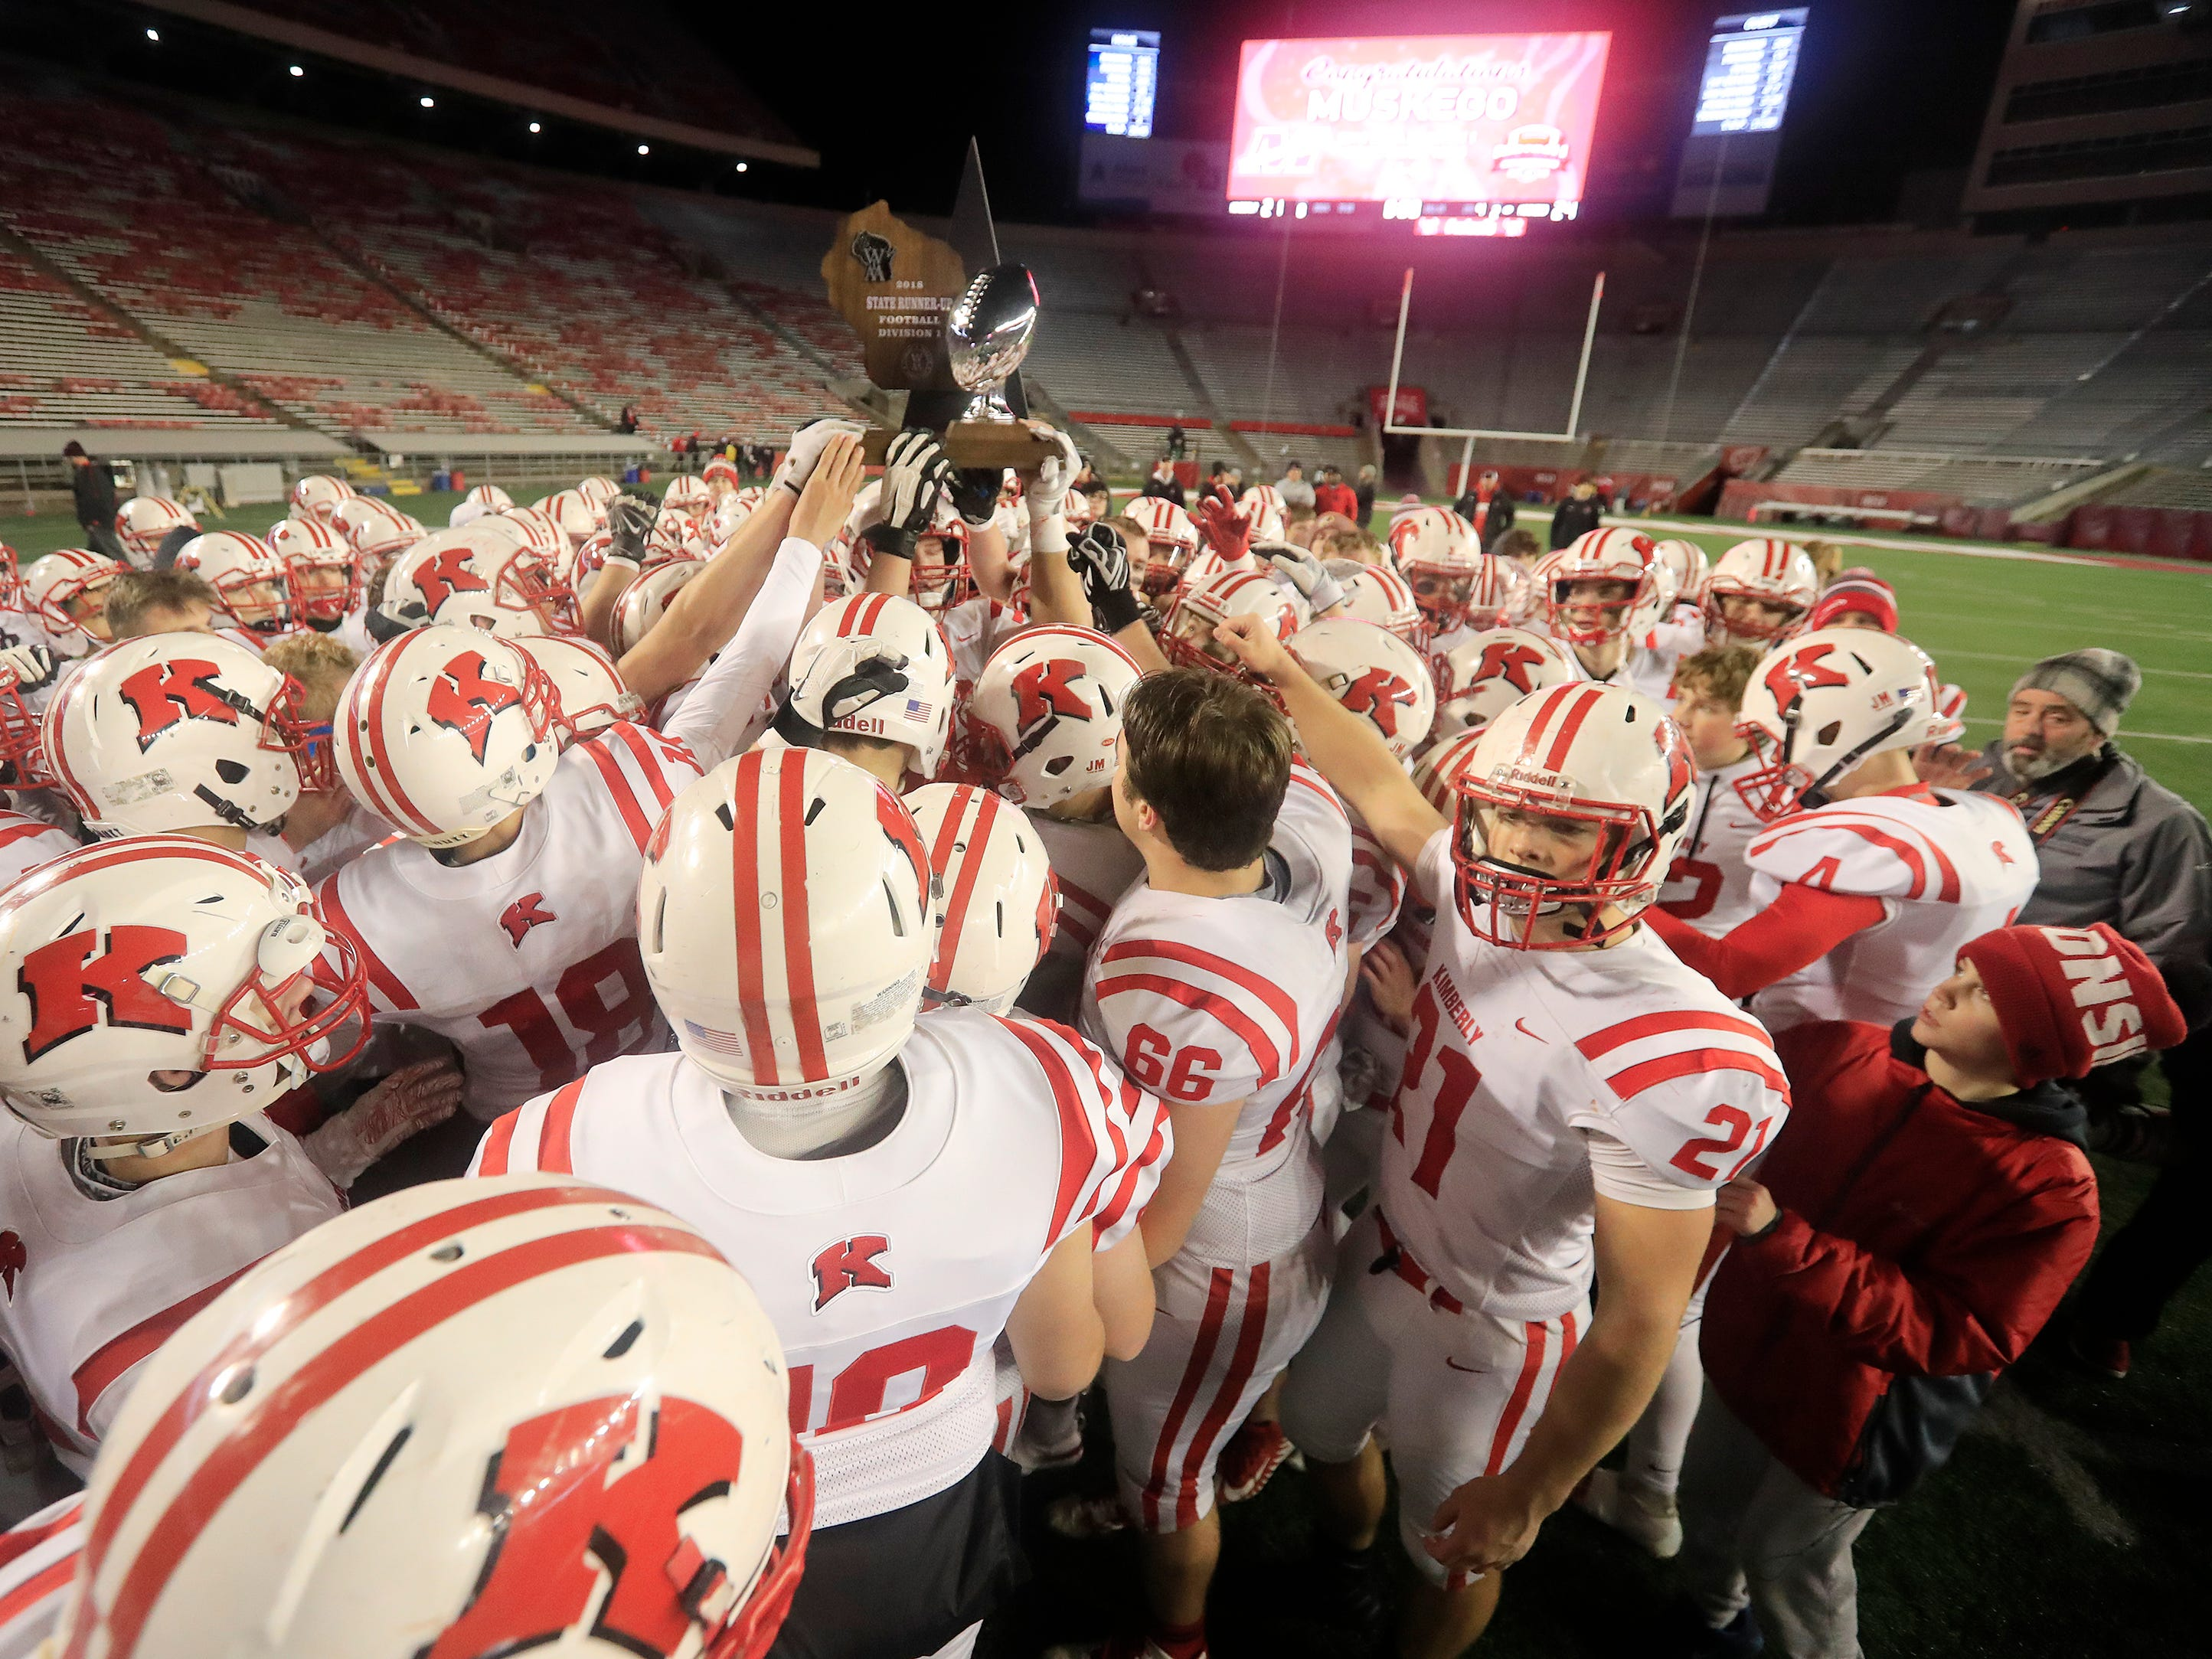 Kimberly players hold up the runners up trophy after losing to Muskego in the WIAA Division 1 championship game at Camp Randall Stadium on Friday, November 16, 2018 in Madison, Wis.